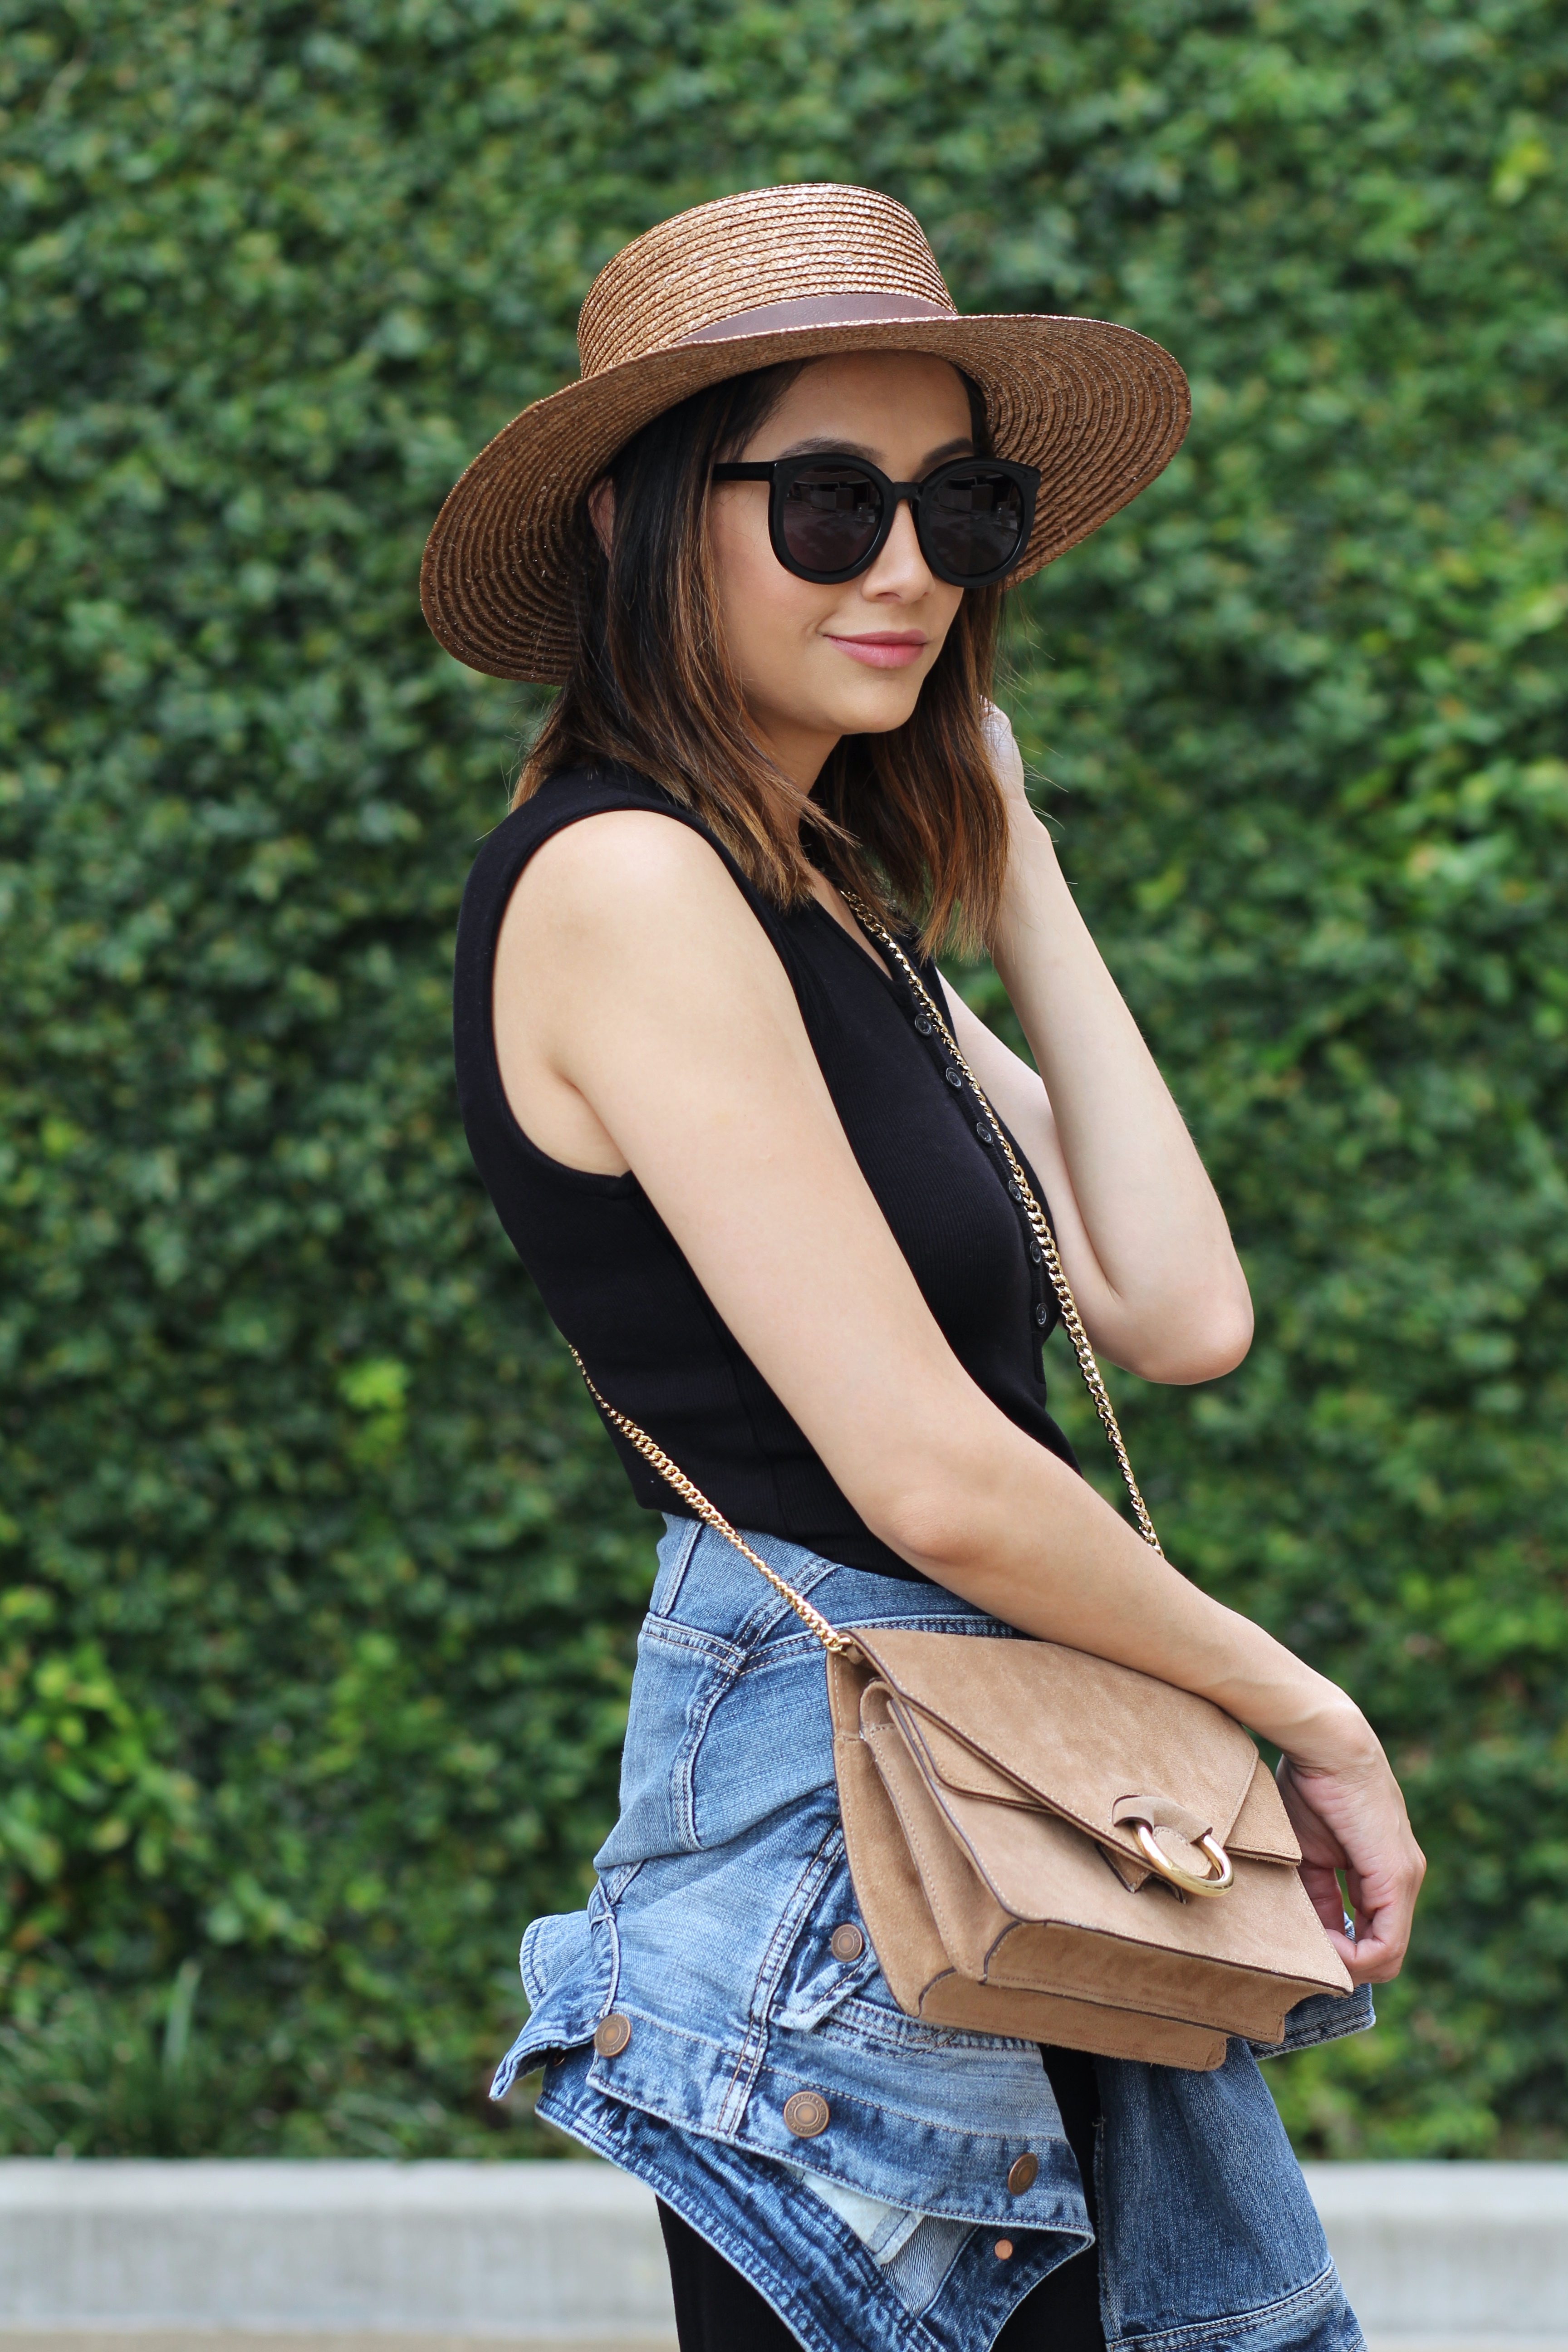 Summer Chic Look | Boater Hat | Oversized Sunglasses